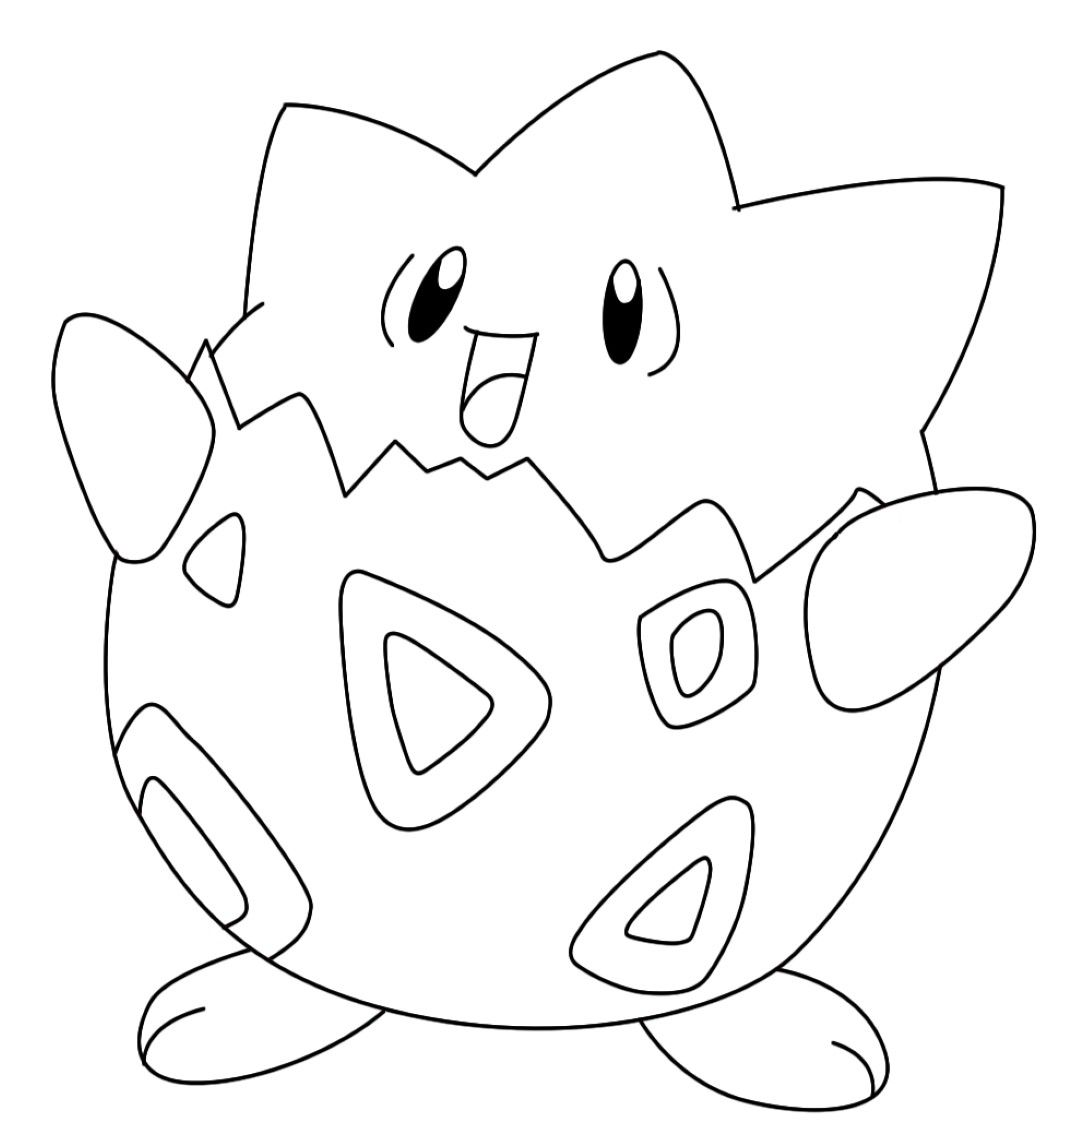 Ausmalbilder Pokemon Glumanda : Togepi Coloring Page Jpg 1080 1132 Coloring Pages Pinterest